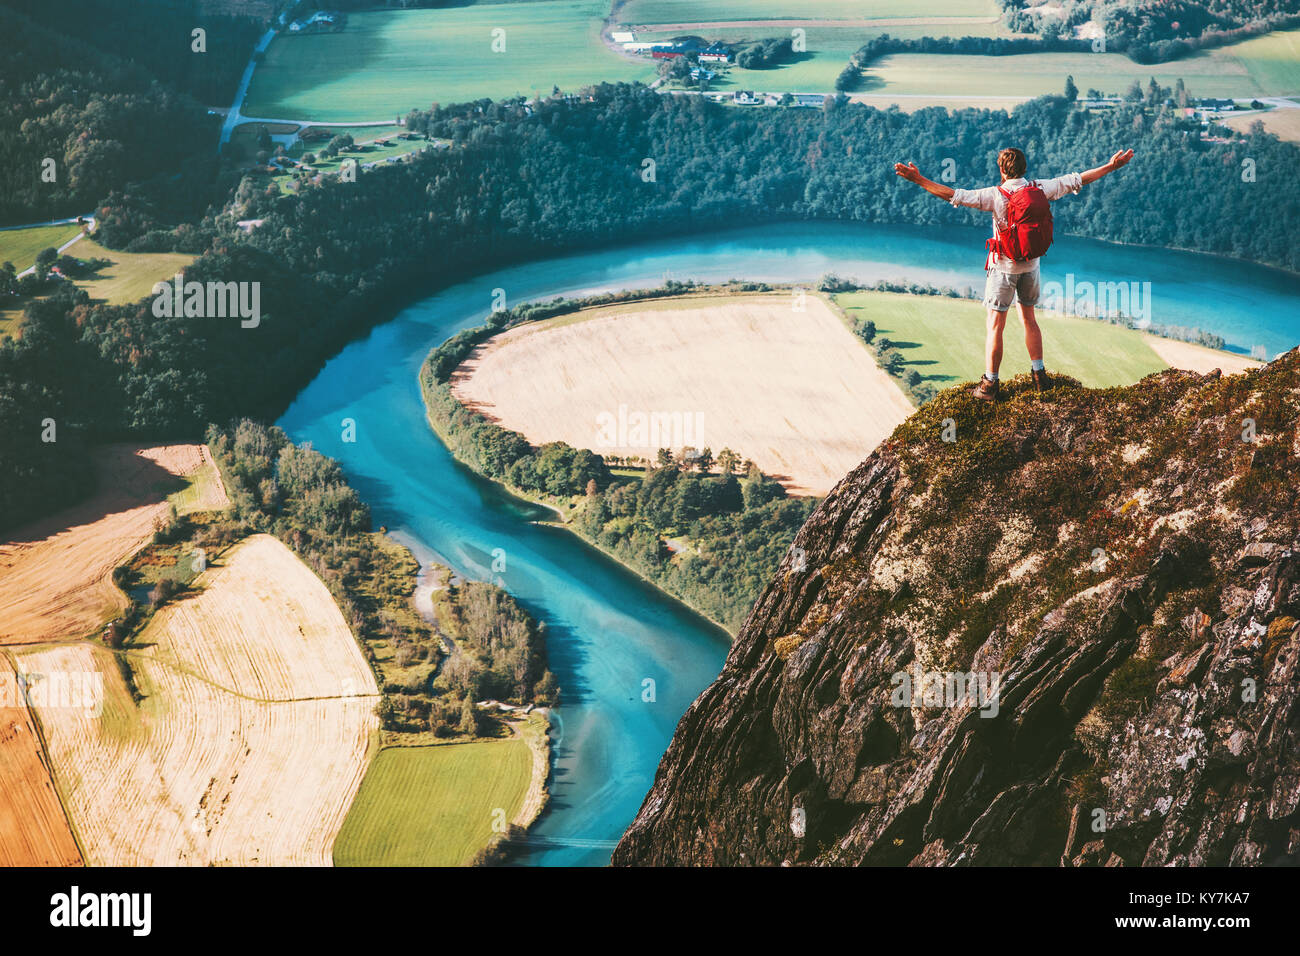 Success Man backpacker standing on cliff mountain hands raised Travel Lifestyle motivation concept adventure active - Stock Image